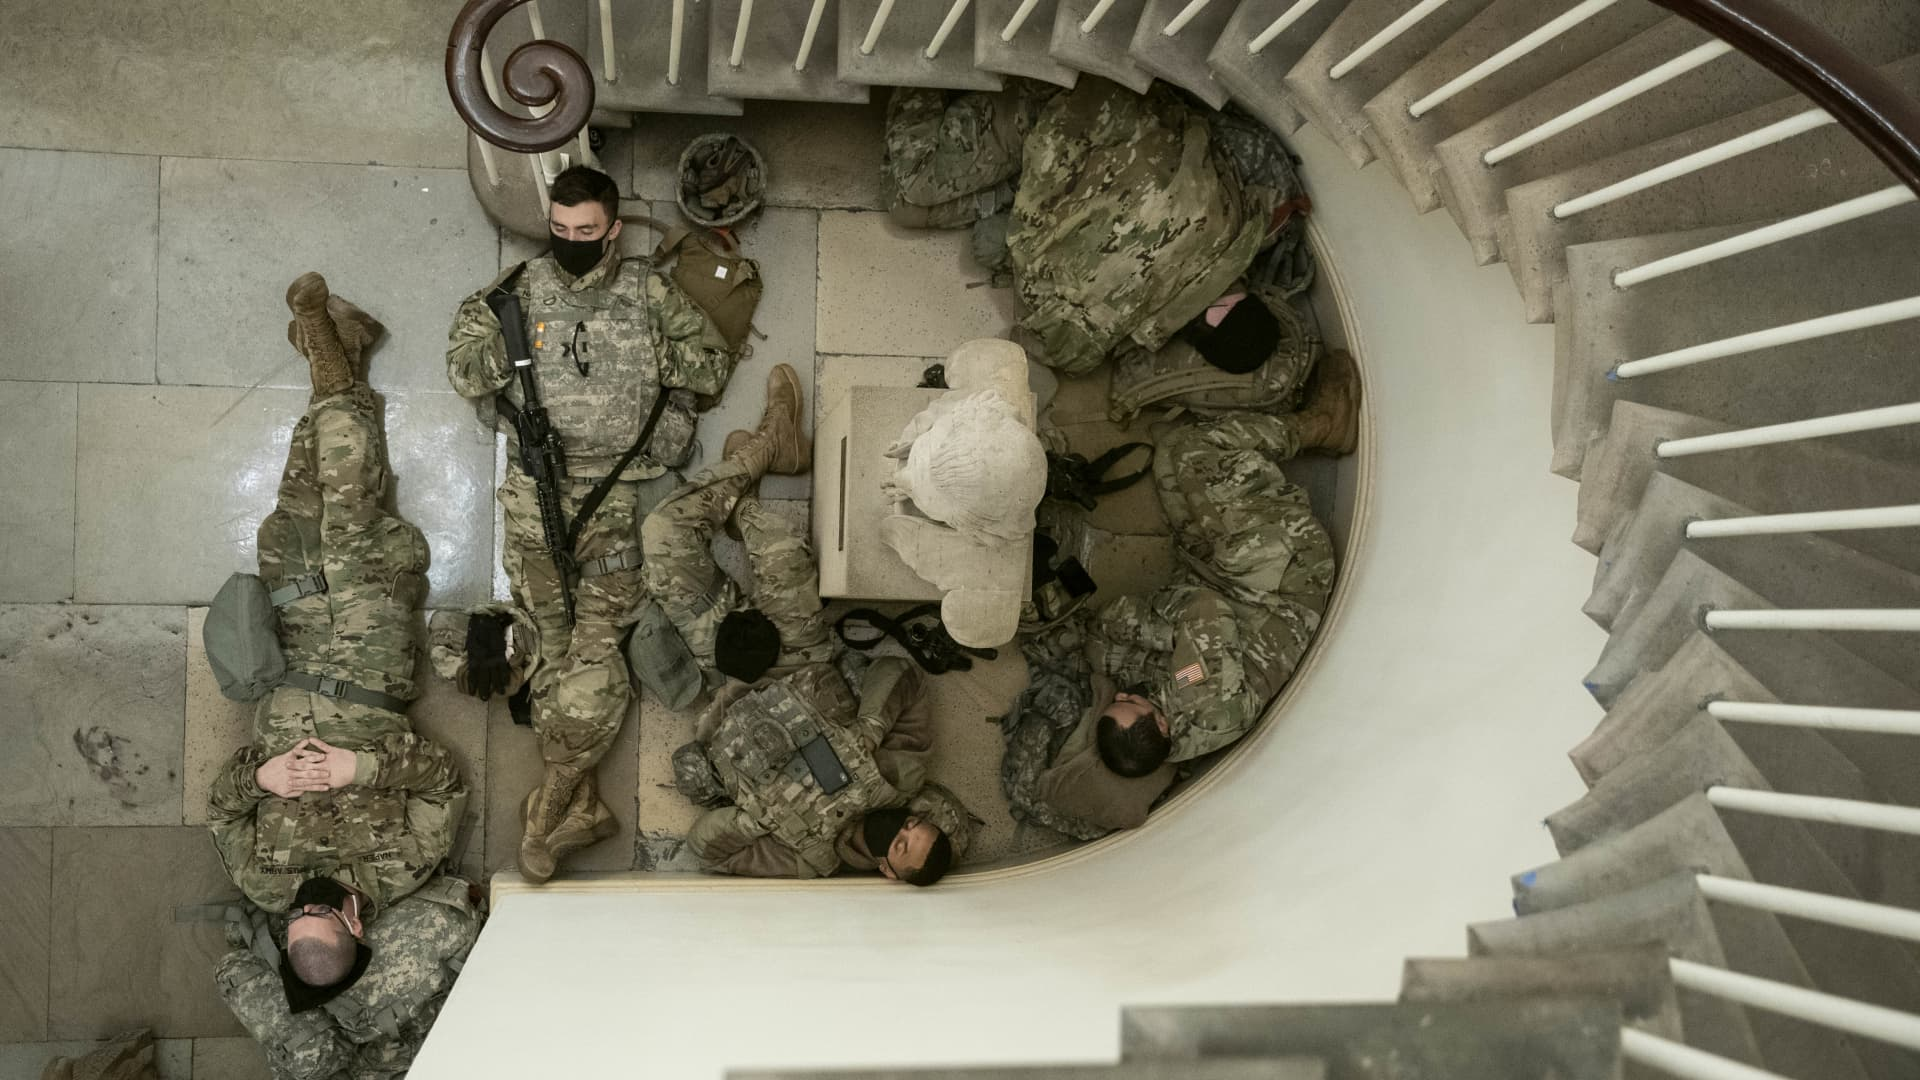 Members of the National Guard rest in a hallway of the U.S. Capitol building in Washington, D.C., U.S., on Wednesday, Jan. 13, 2021.